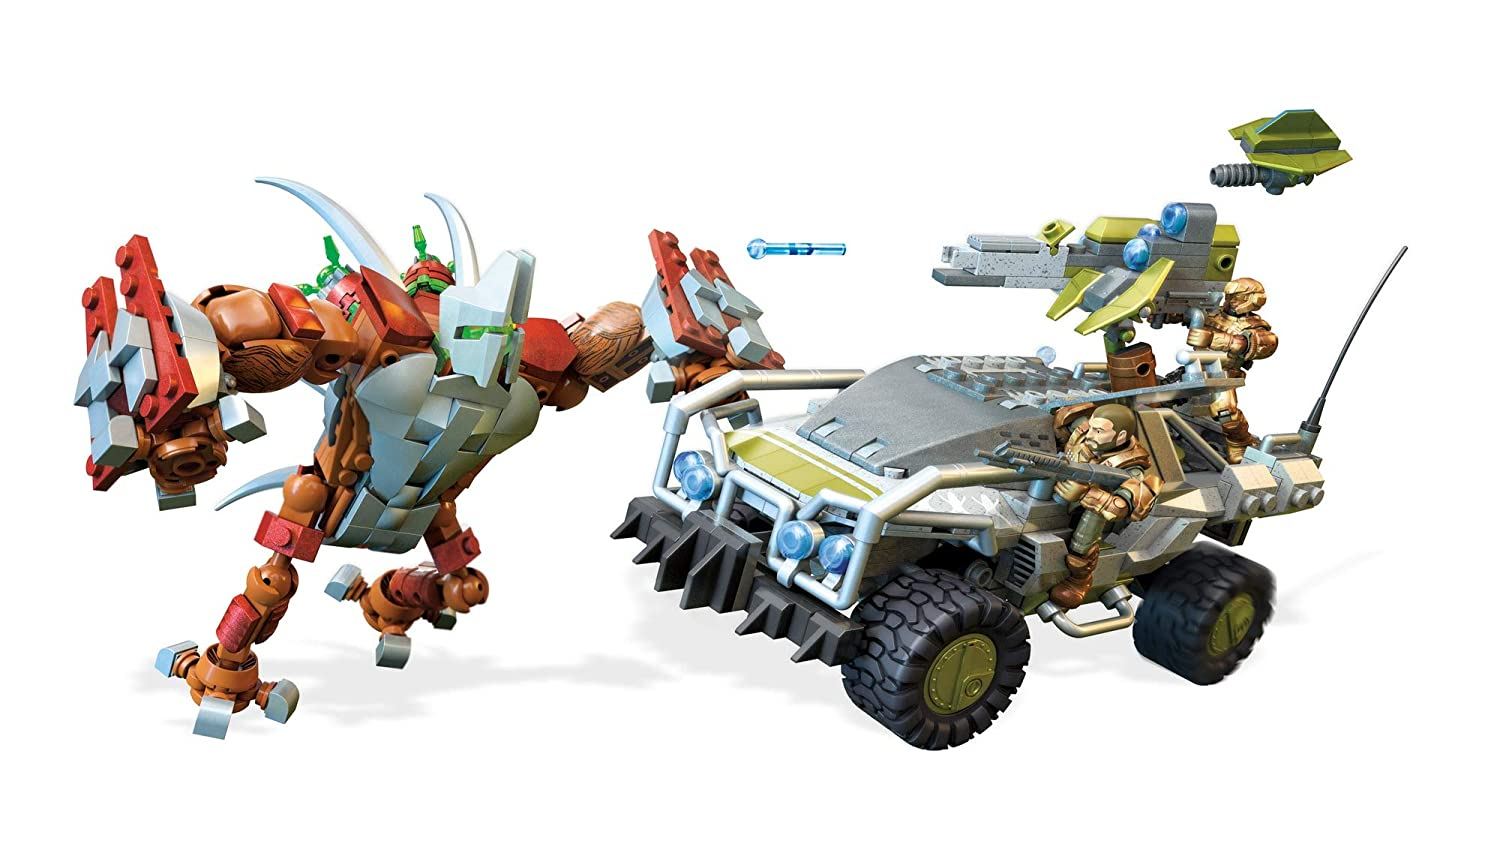 Mega Construx Halo Forgehog Vs. Banished Goliath Fisher Price / Mattel Canada FVK36